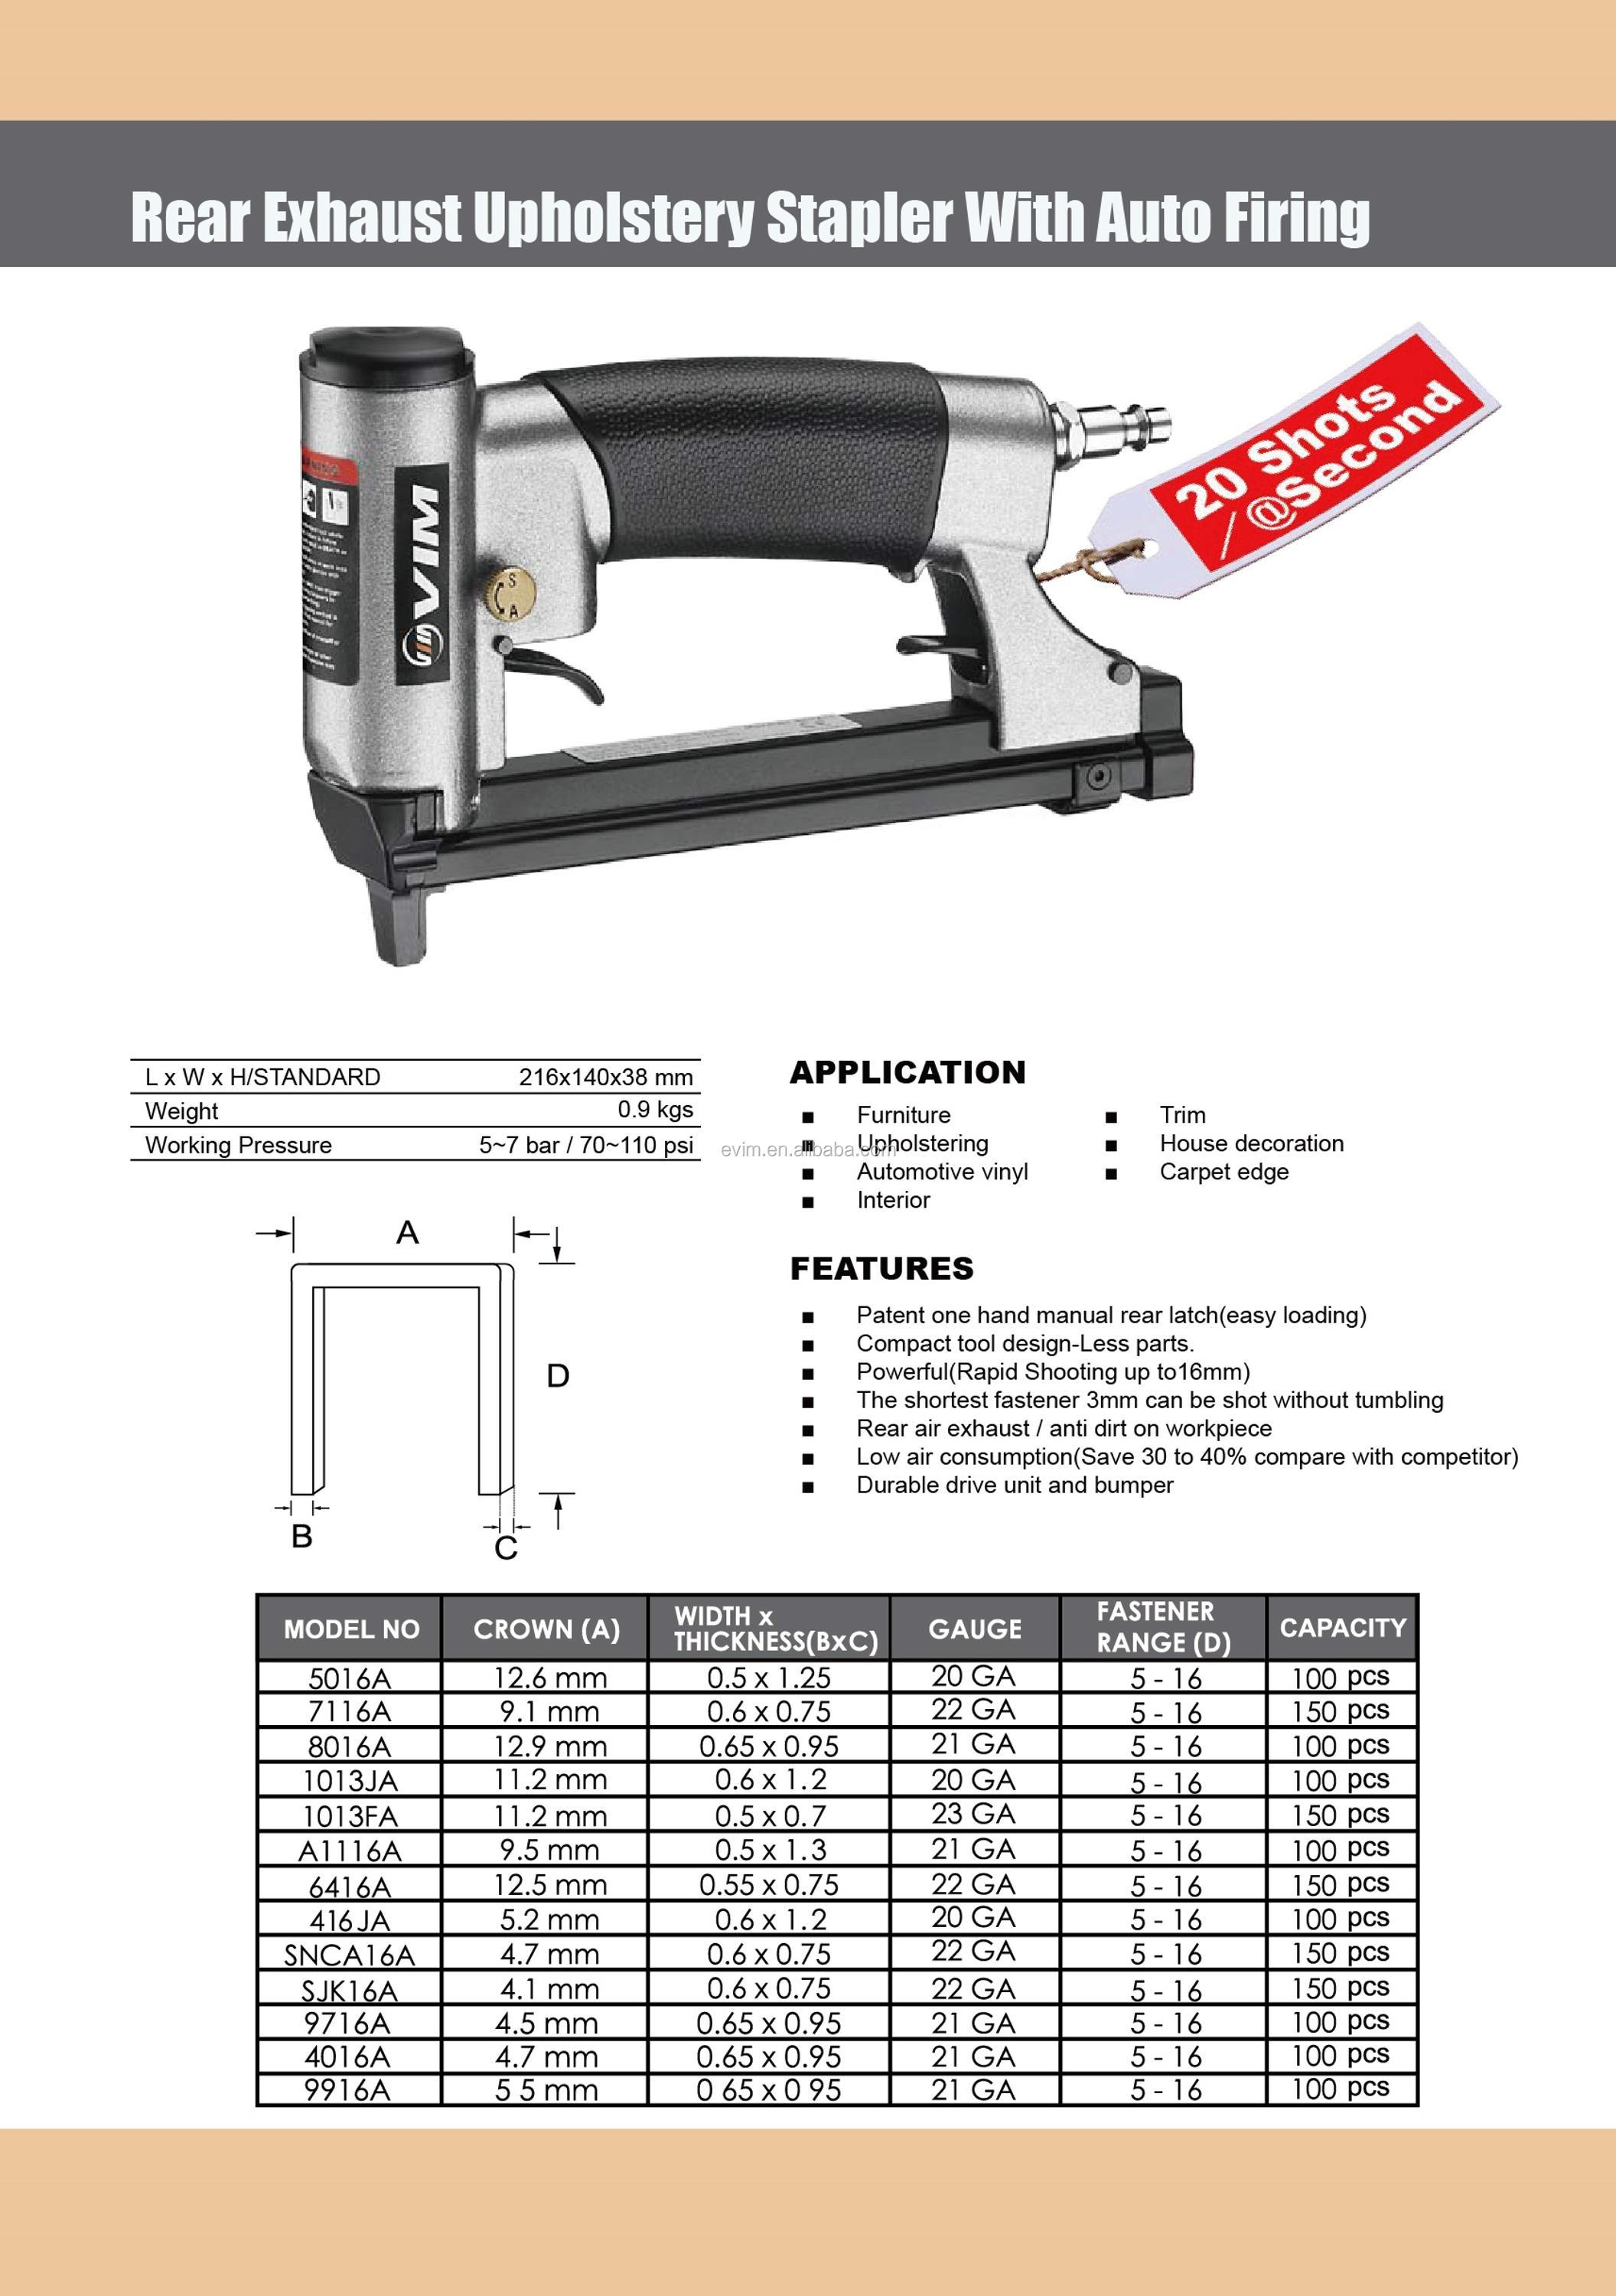 5016A 20 Gauge Rear Exhaust Upholstery Stapler with Auto Firing